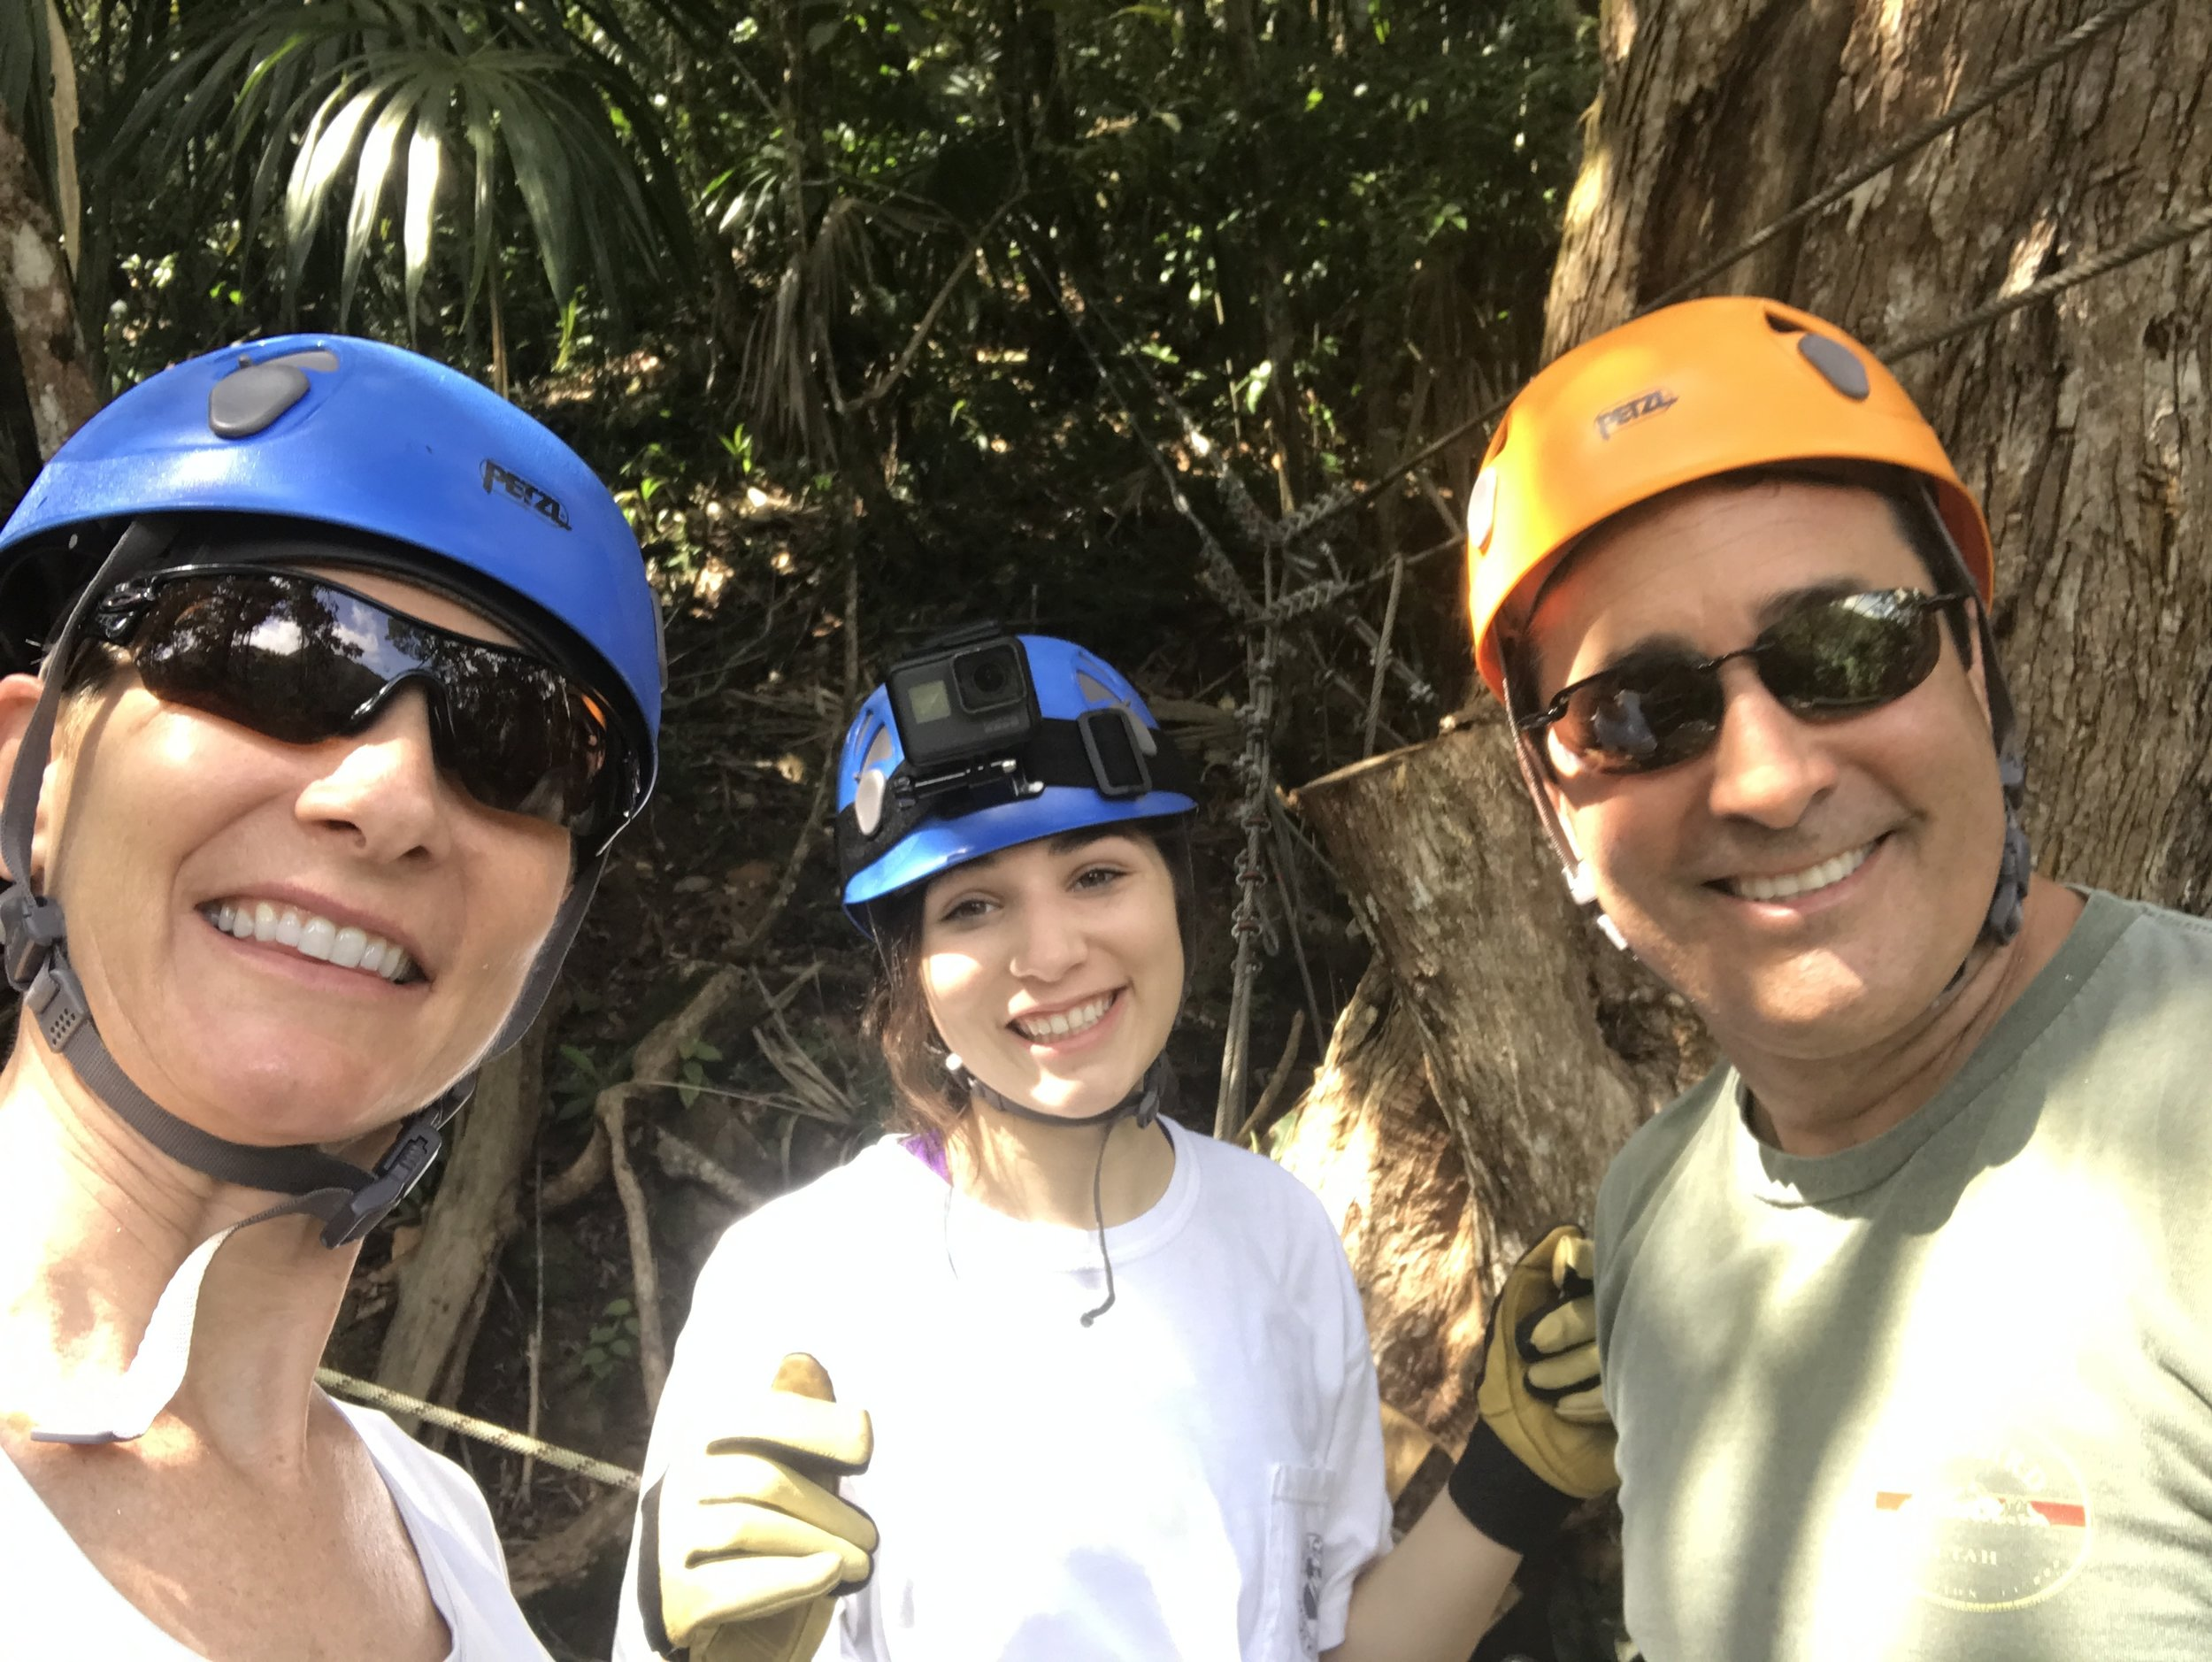 Ziplining in Belize